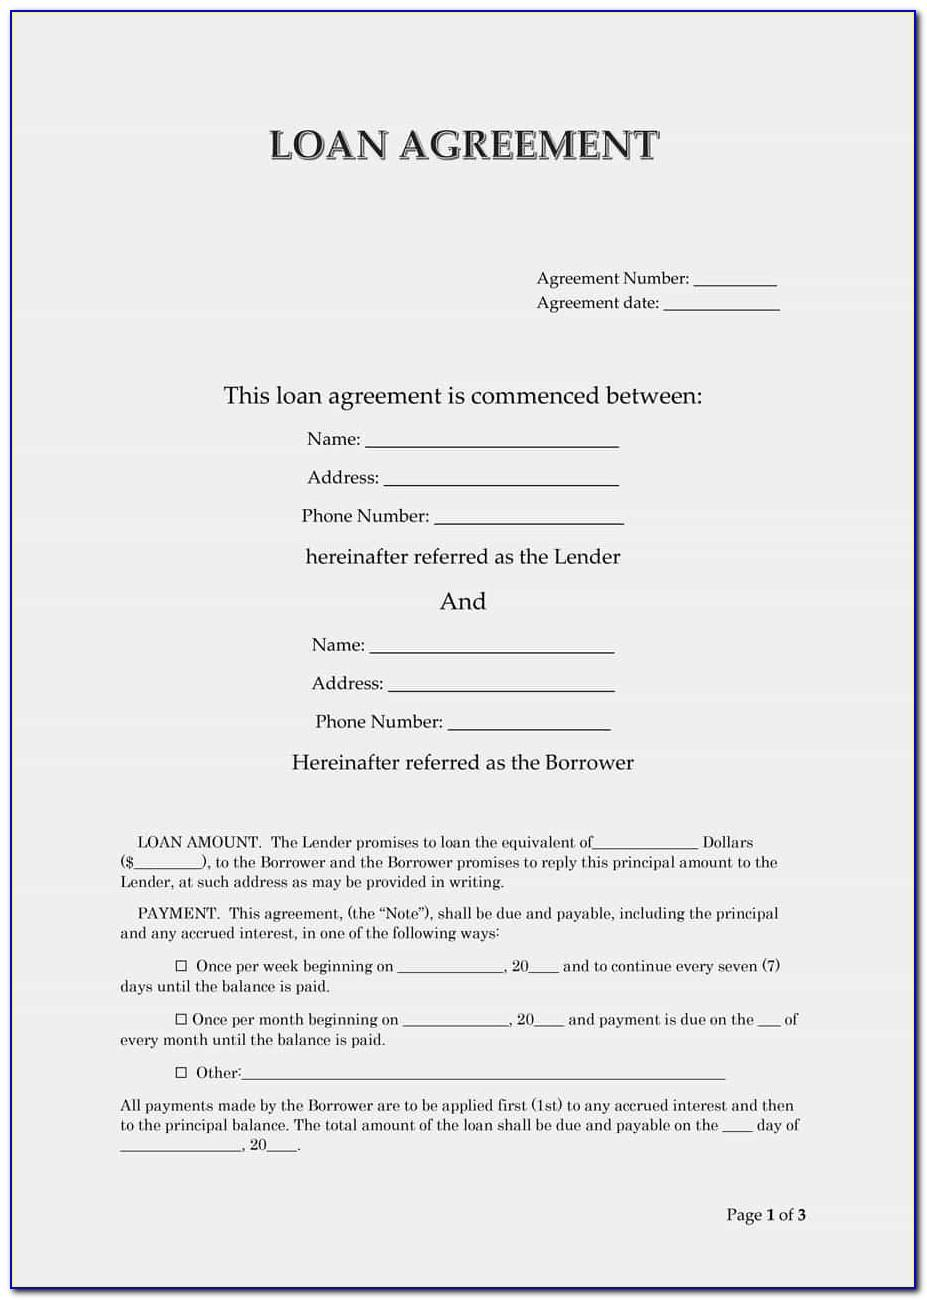 Simple Interest Loan Contract Template